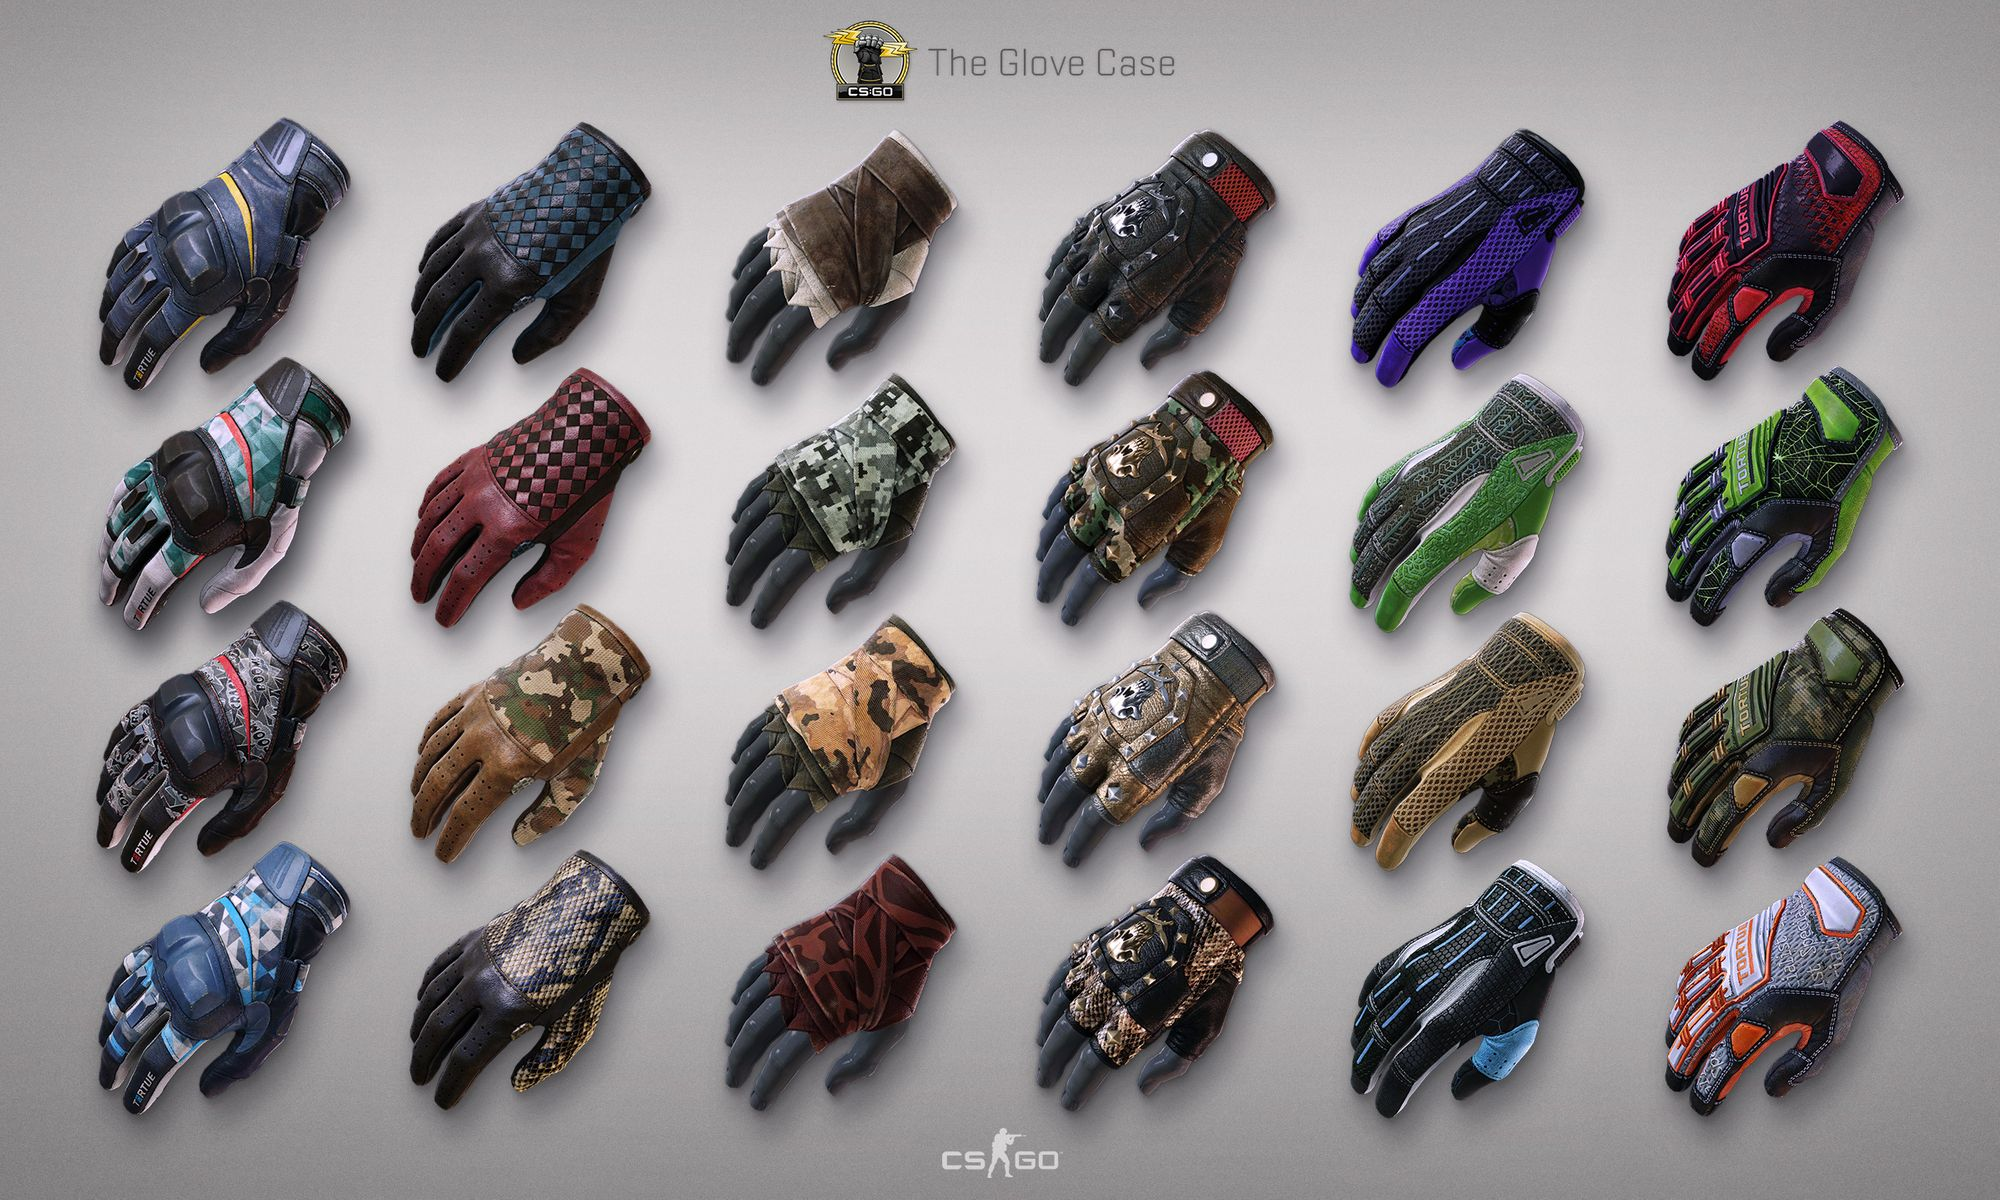 Brothers In Arms & Glove Case. Обновление CS:GO 29.11.2016